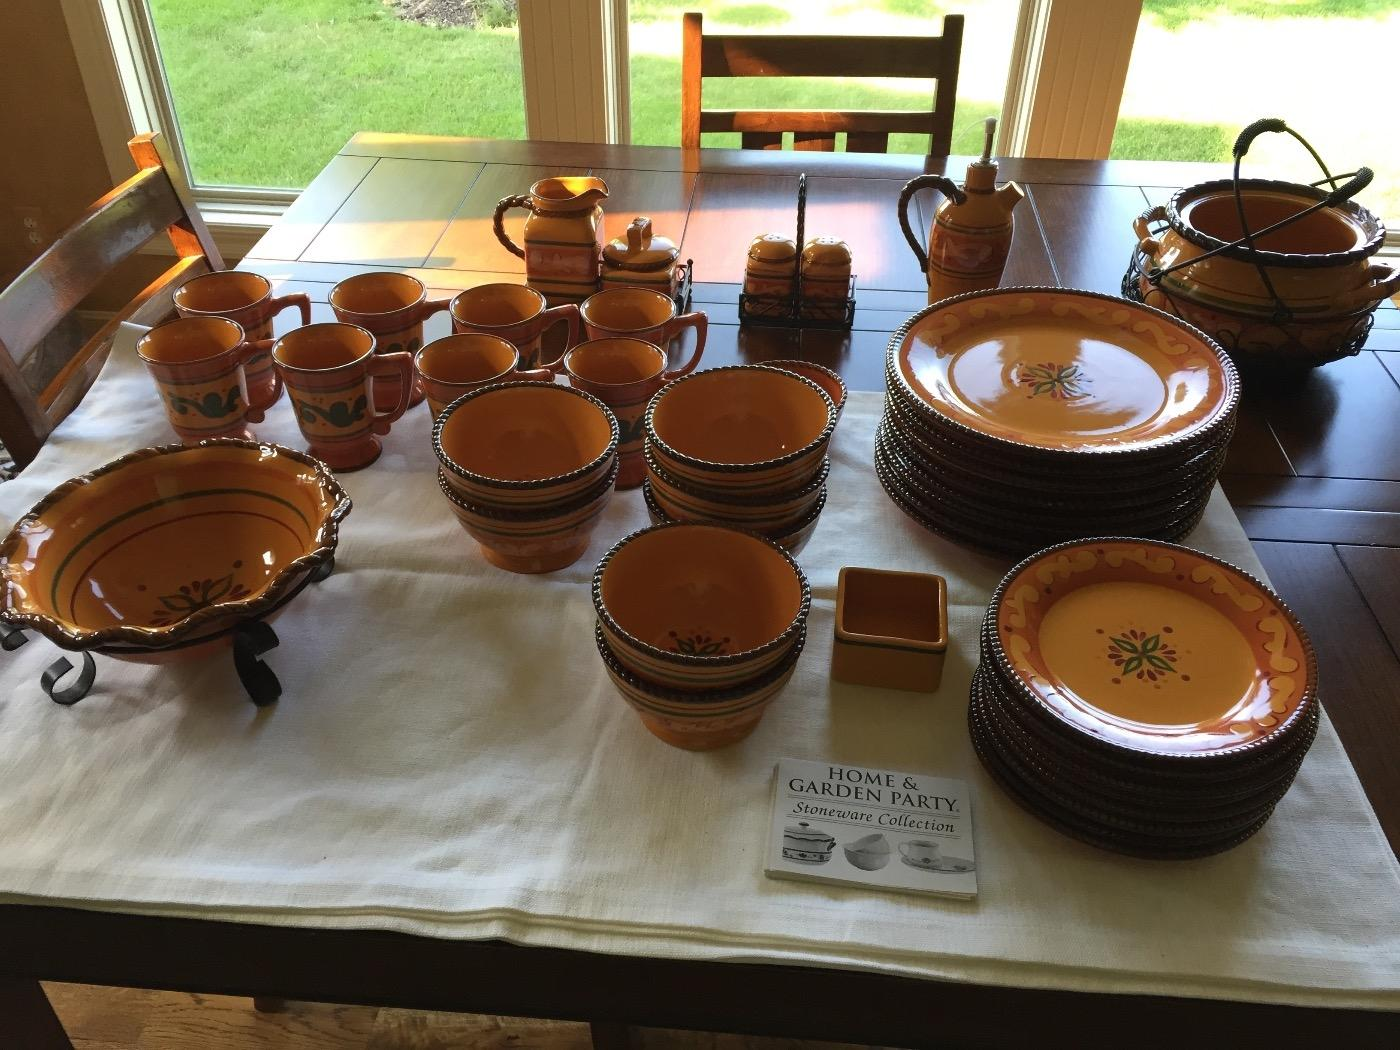 Best Home And Party Garden Stoneware for sale in Overland Park ...